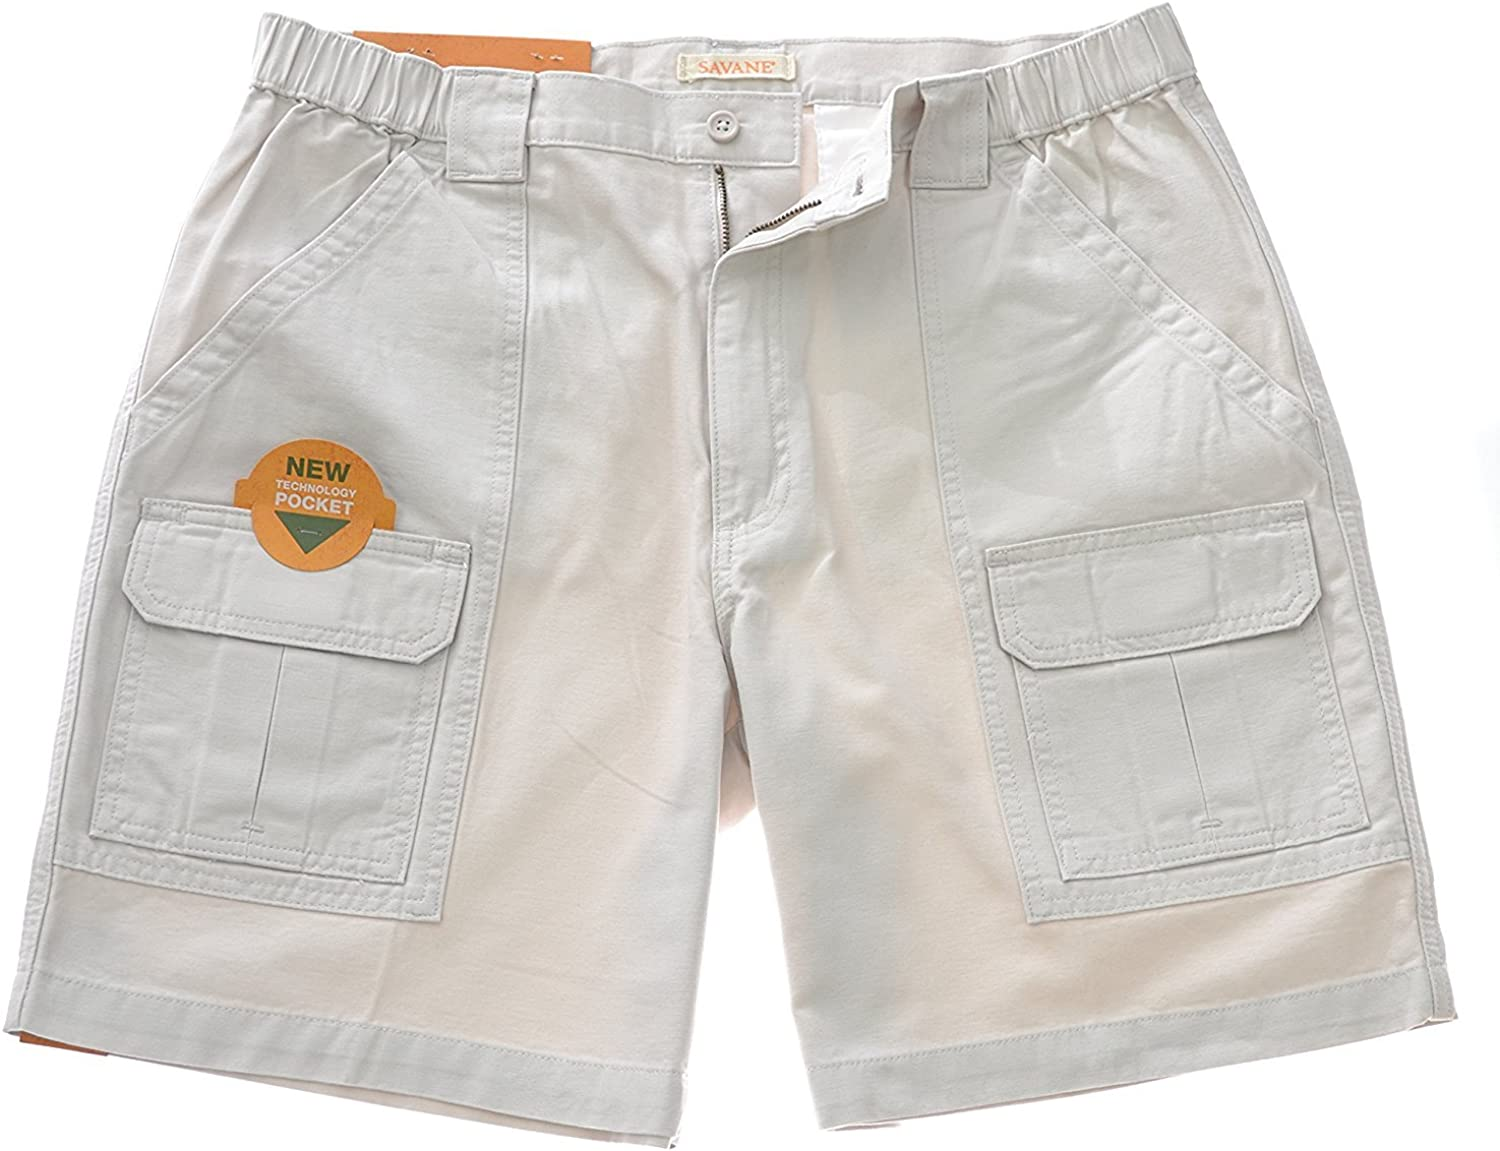 Savane Mens Hiking Cargo Shorts